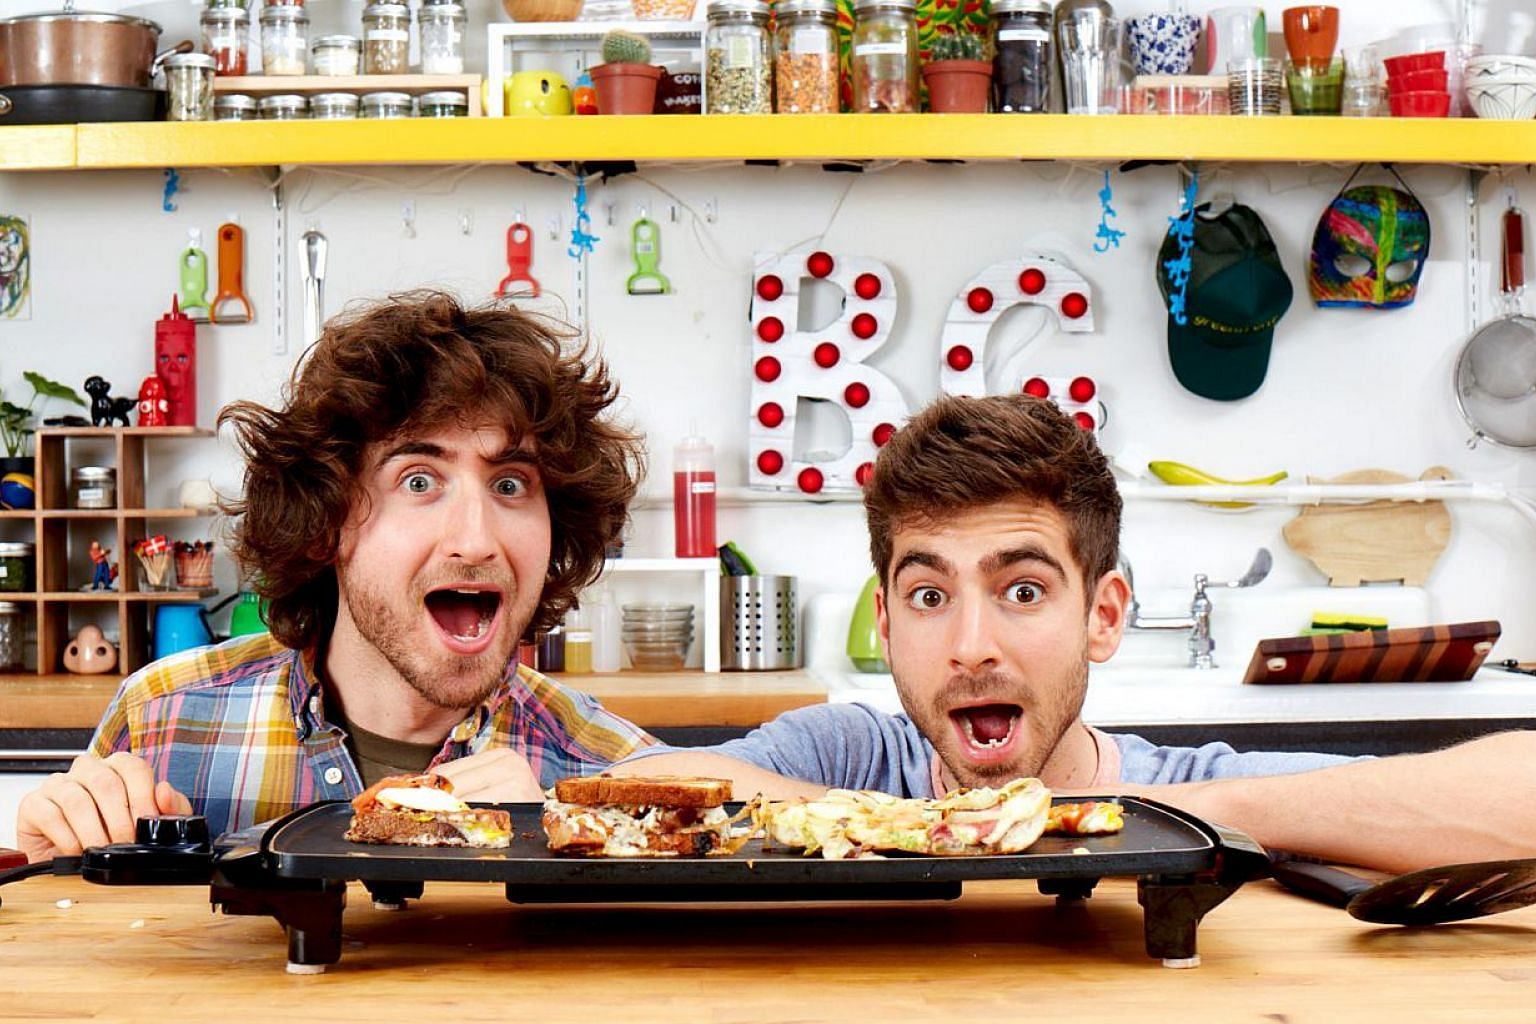 Josh (far left) and Mike Greenfield got their new TV show after their tutorial videos of easy-to-cook meals on YouTube caught the attention of a production house.